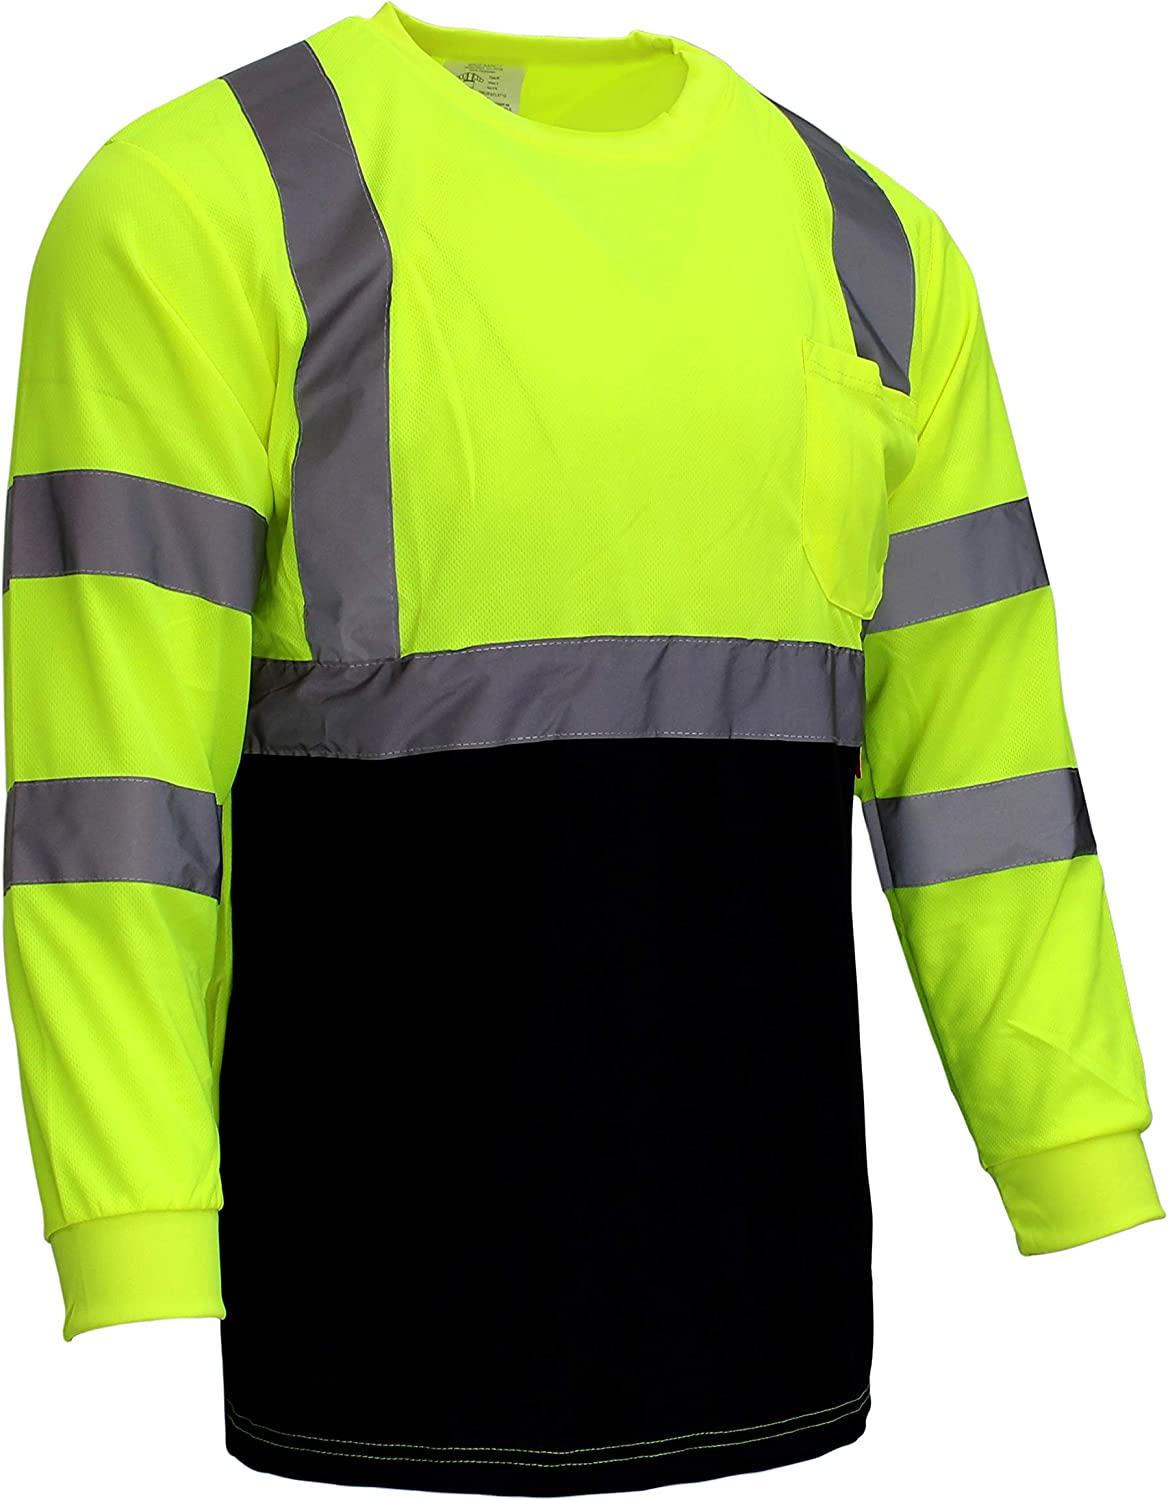 Troy TSBFS8512 Class 3 High Visible Short Sleeve Black Bottom Safety T Shirts Moisture Wicking Mesh with 2 Inch Replective Tapes Green, 5XL Set of 3